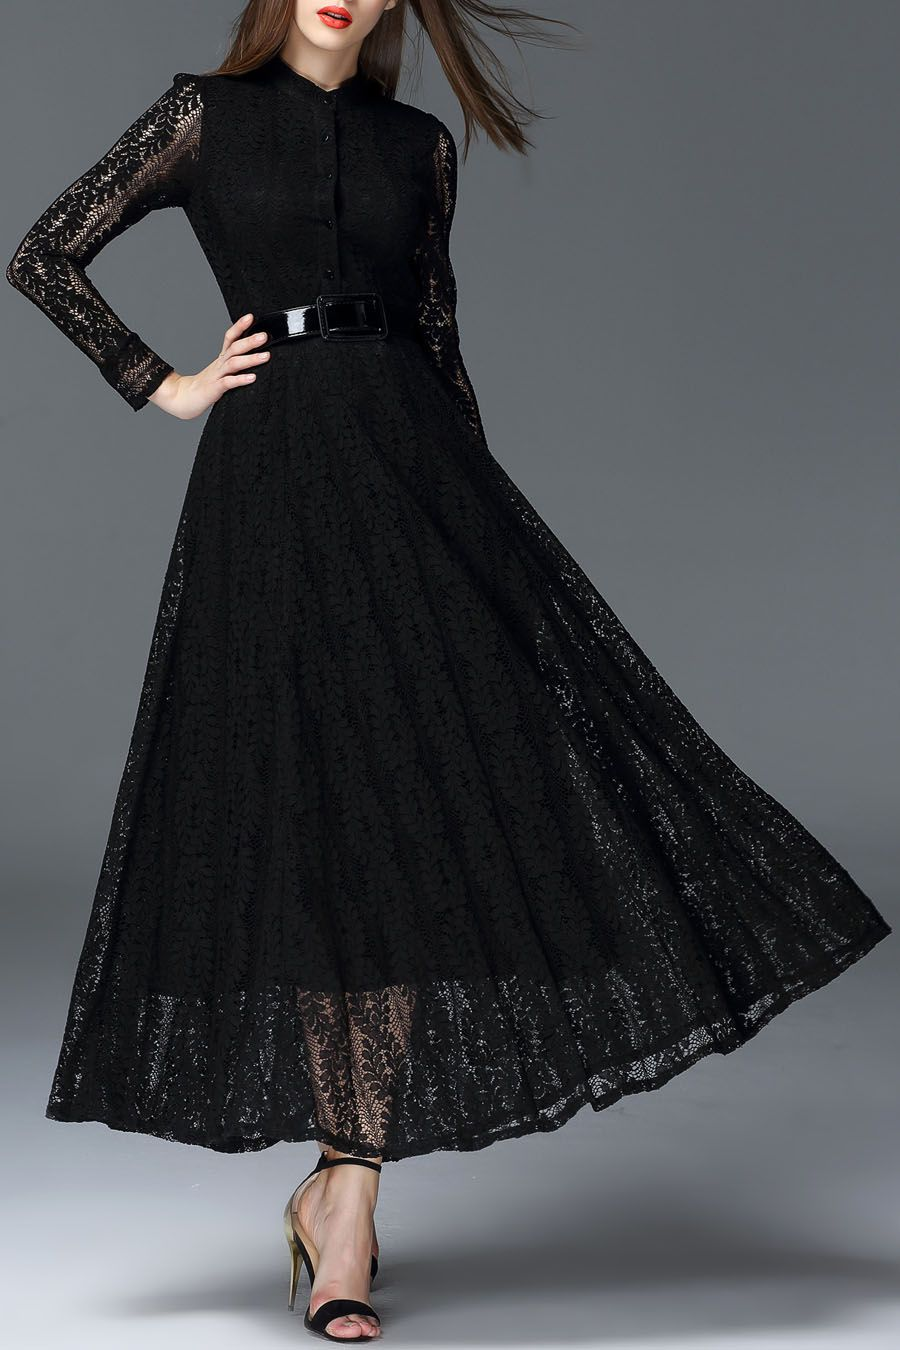 Lace dress maxi  Oserjep Black Hollow Out Maxi Lace Dress  Maxi Dresses at DEZZAL